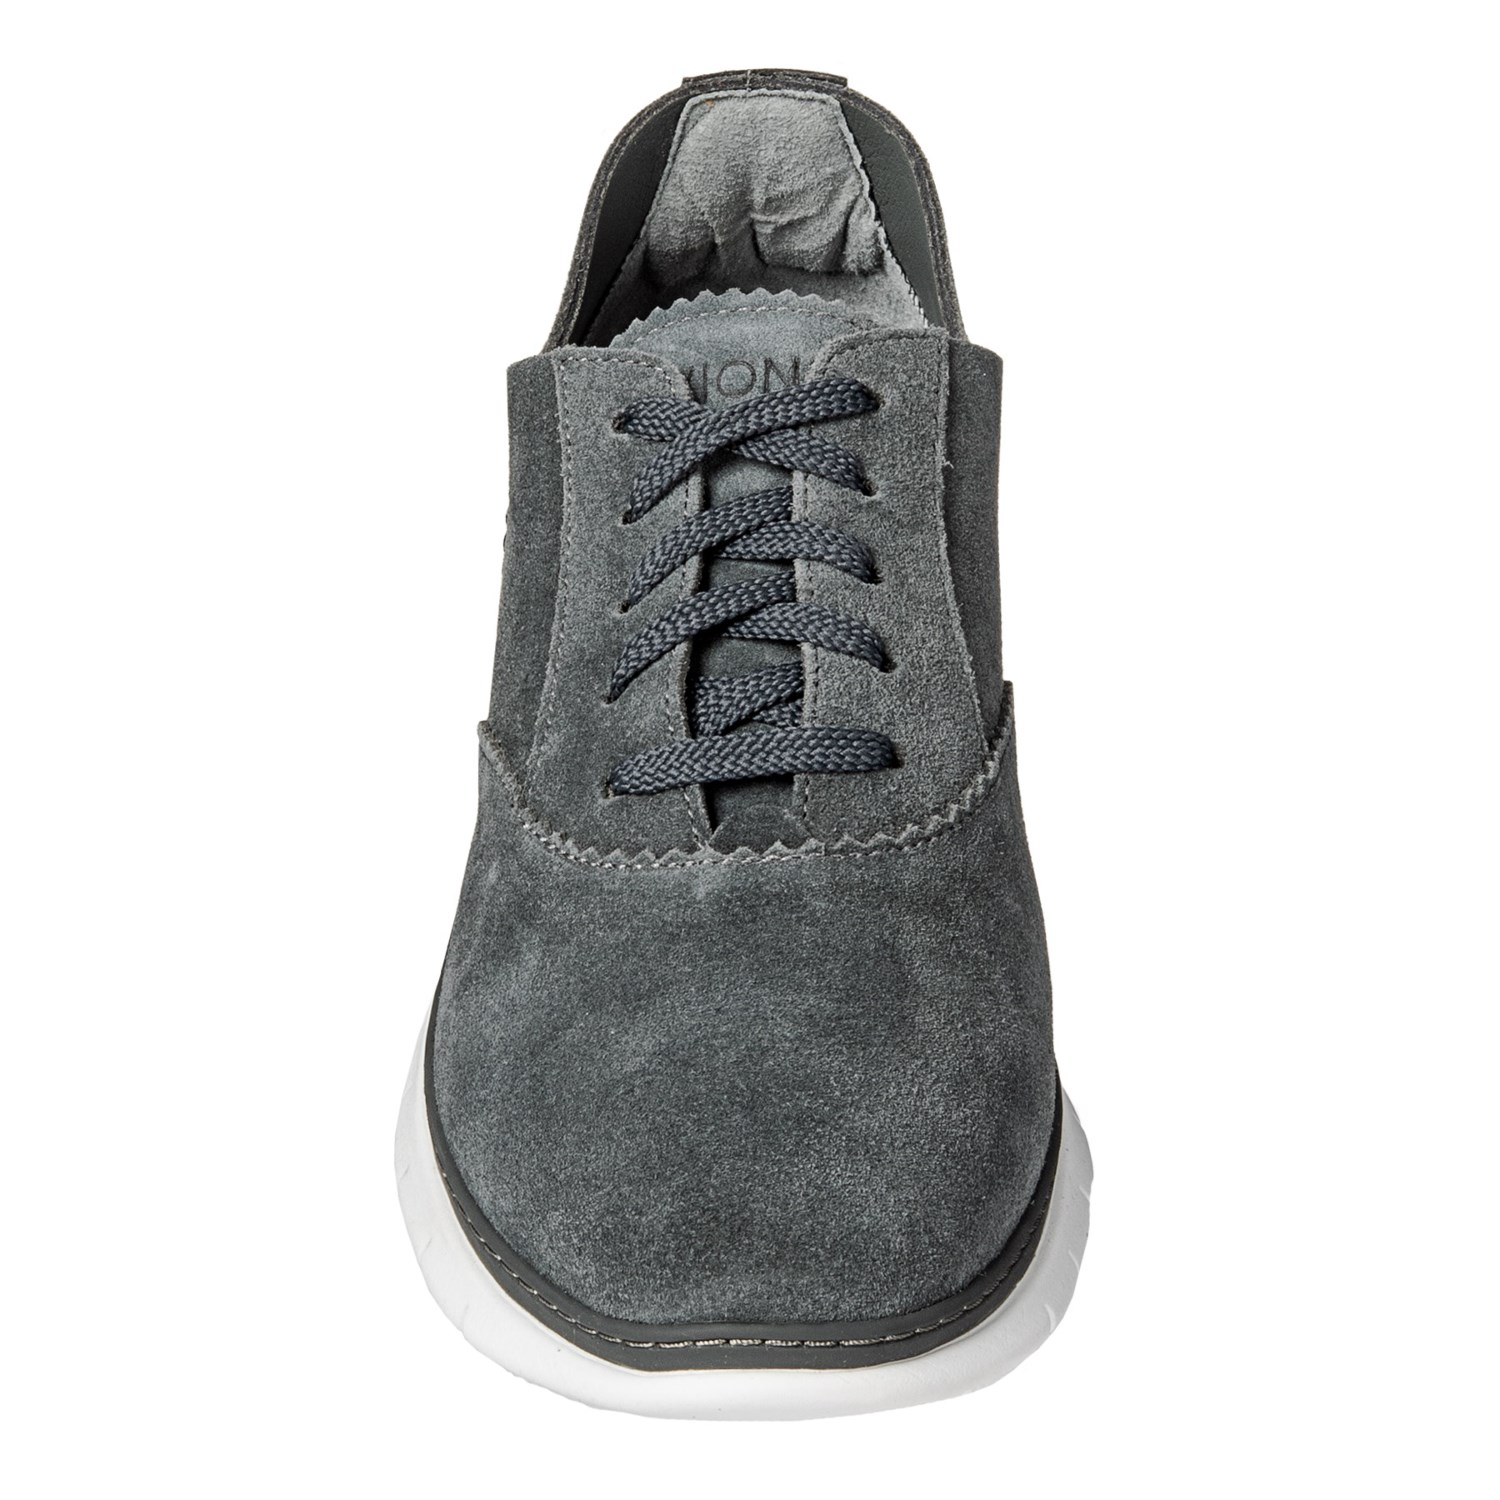 ca4c55e3f16b3 Vionic Orthaheel Technology Taylor Sneakers (For Women) - Save 20%